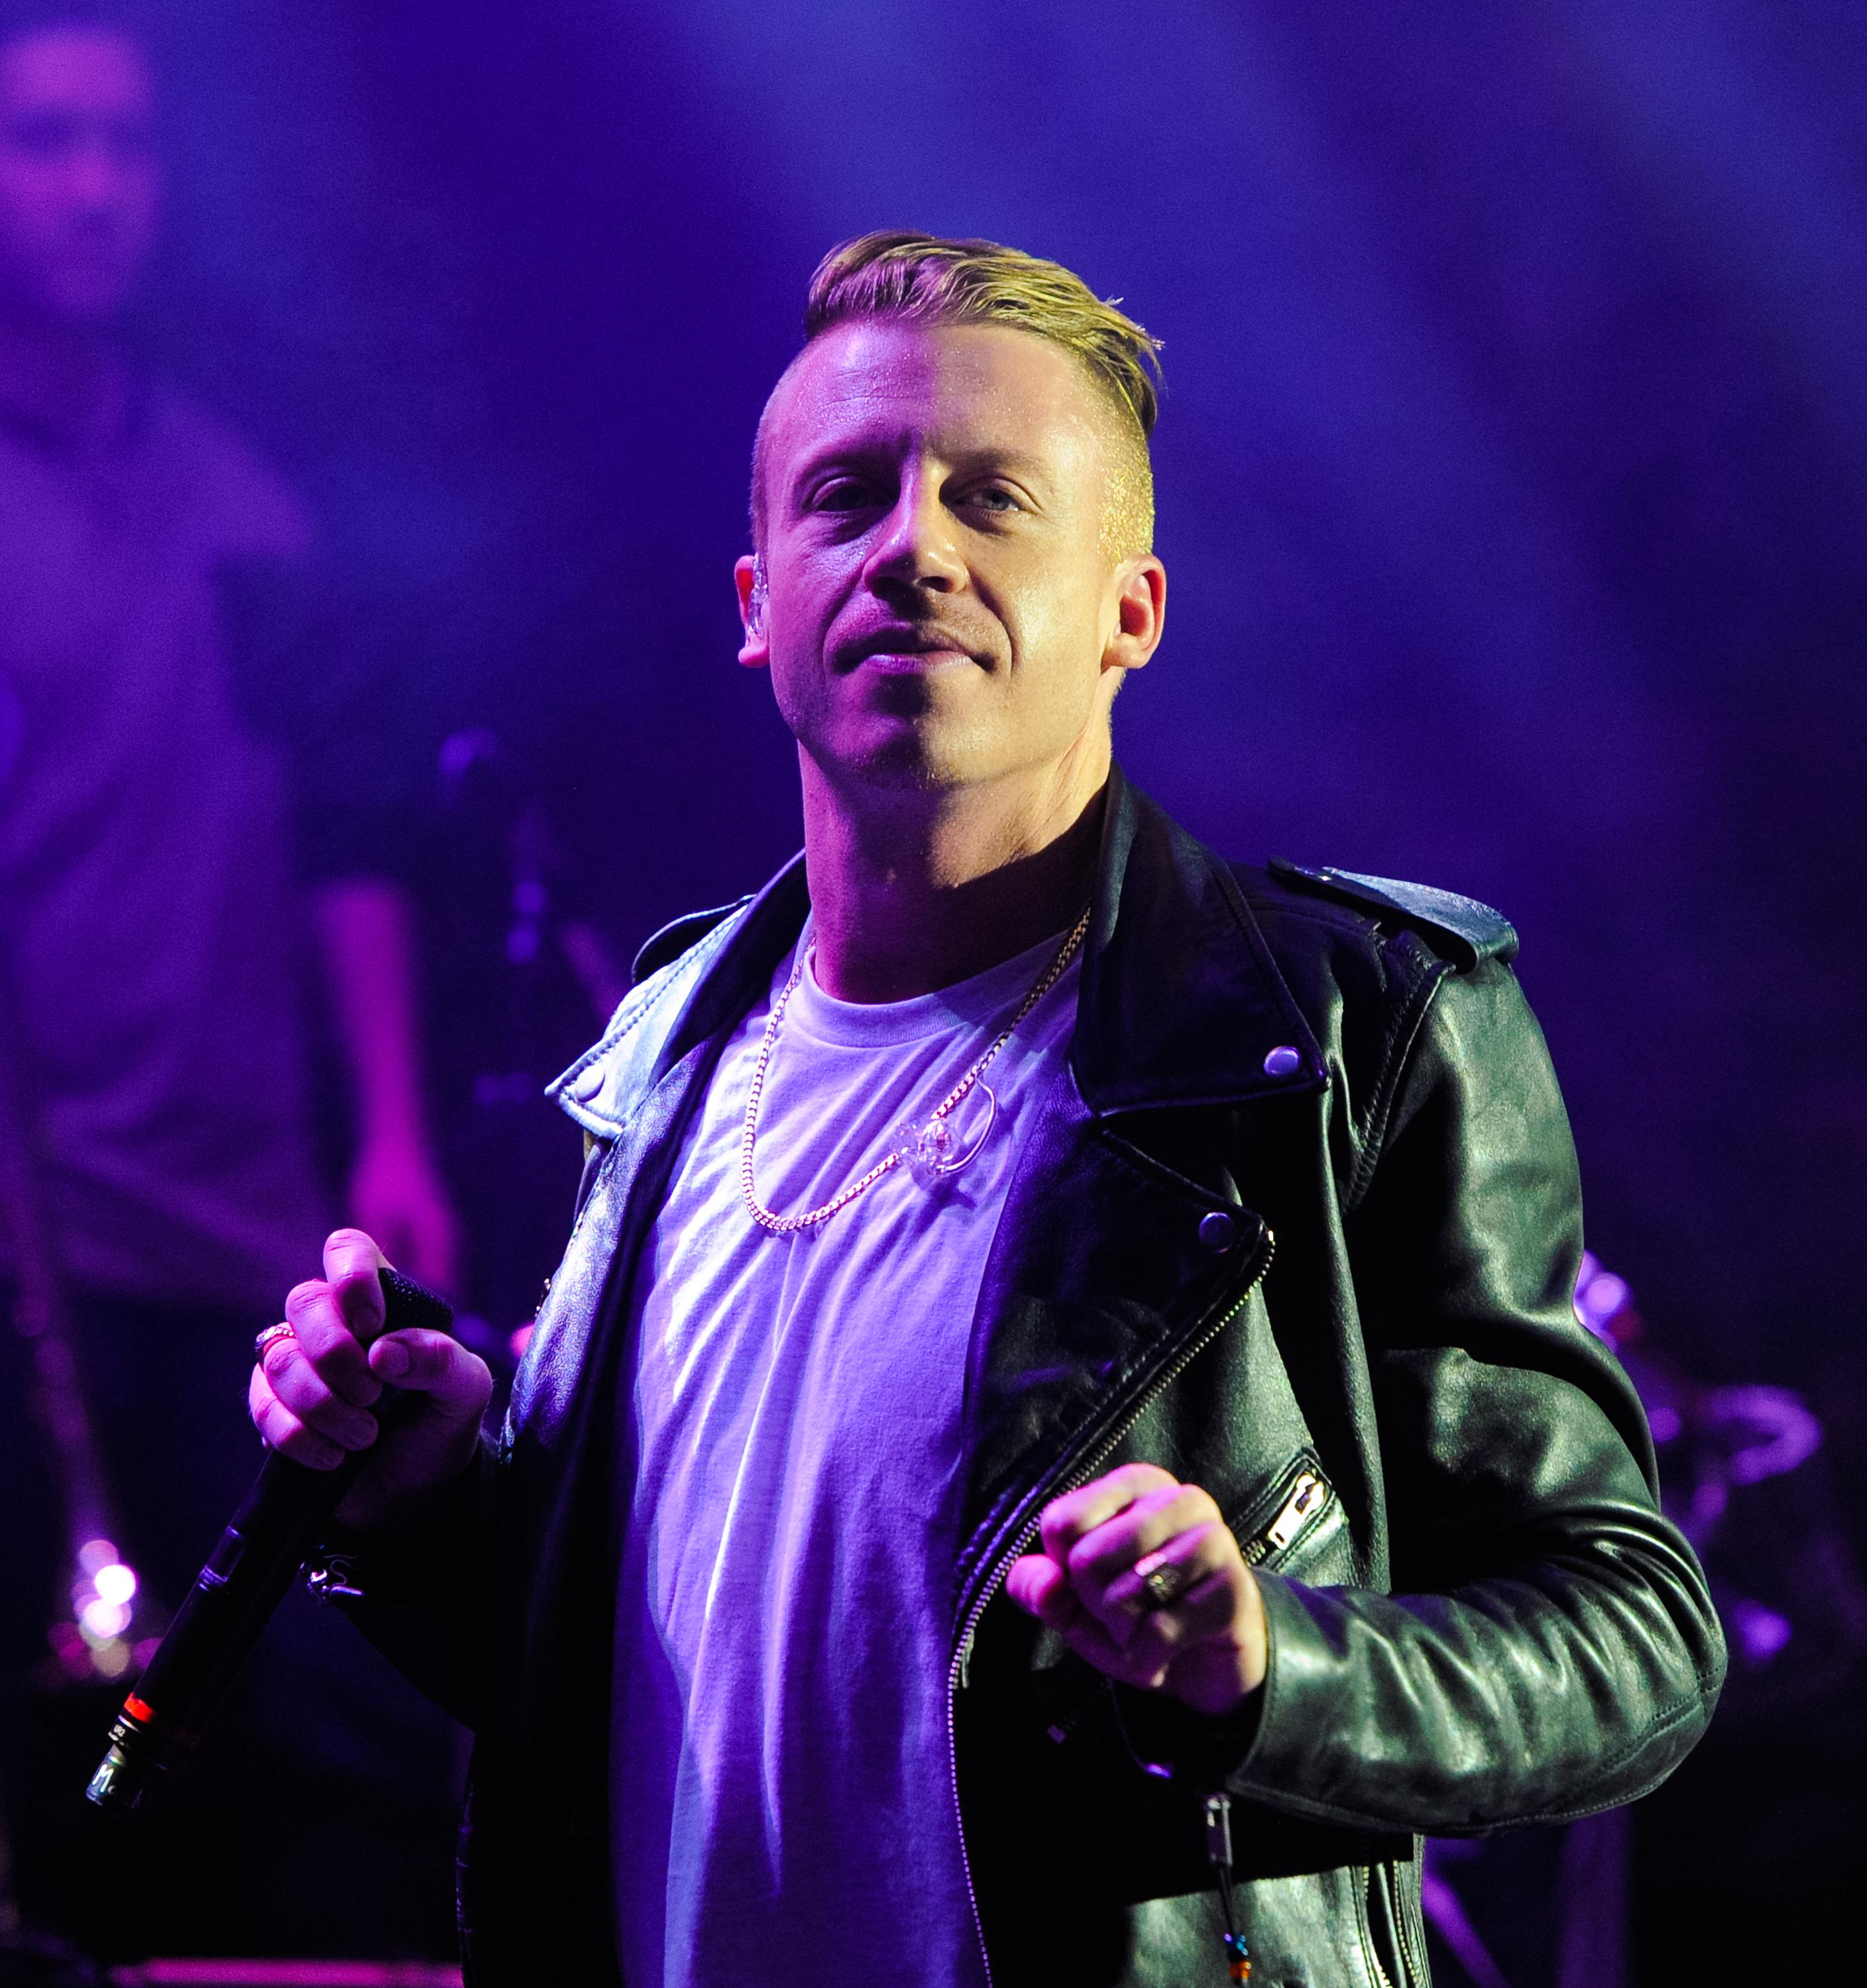 T-Mobile Presents Macklemore & Ryan Lewis At The Belasco Theatre